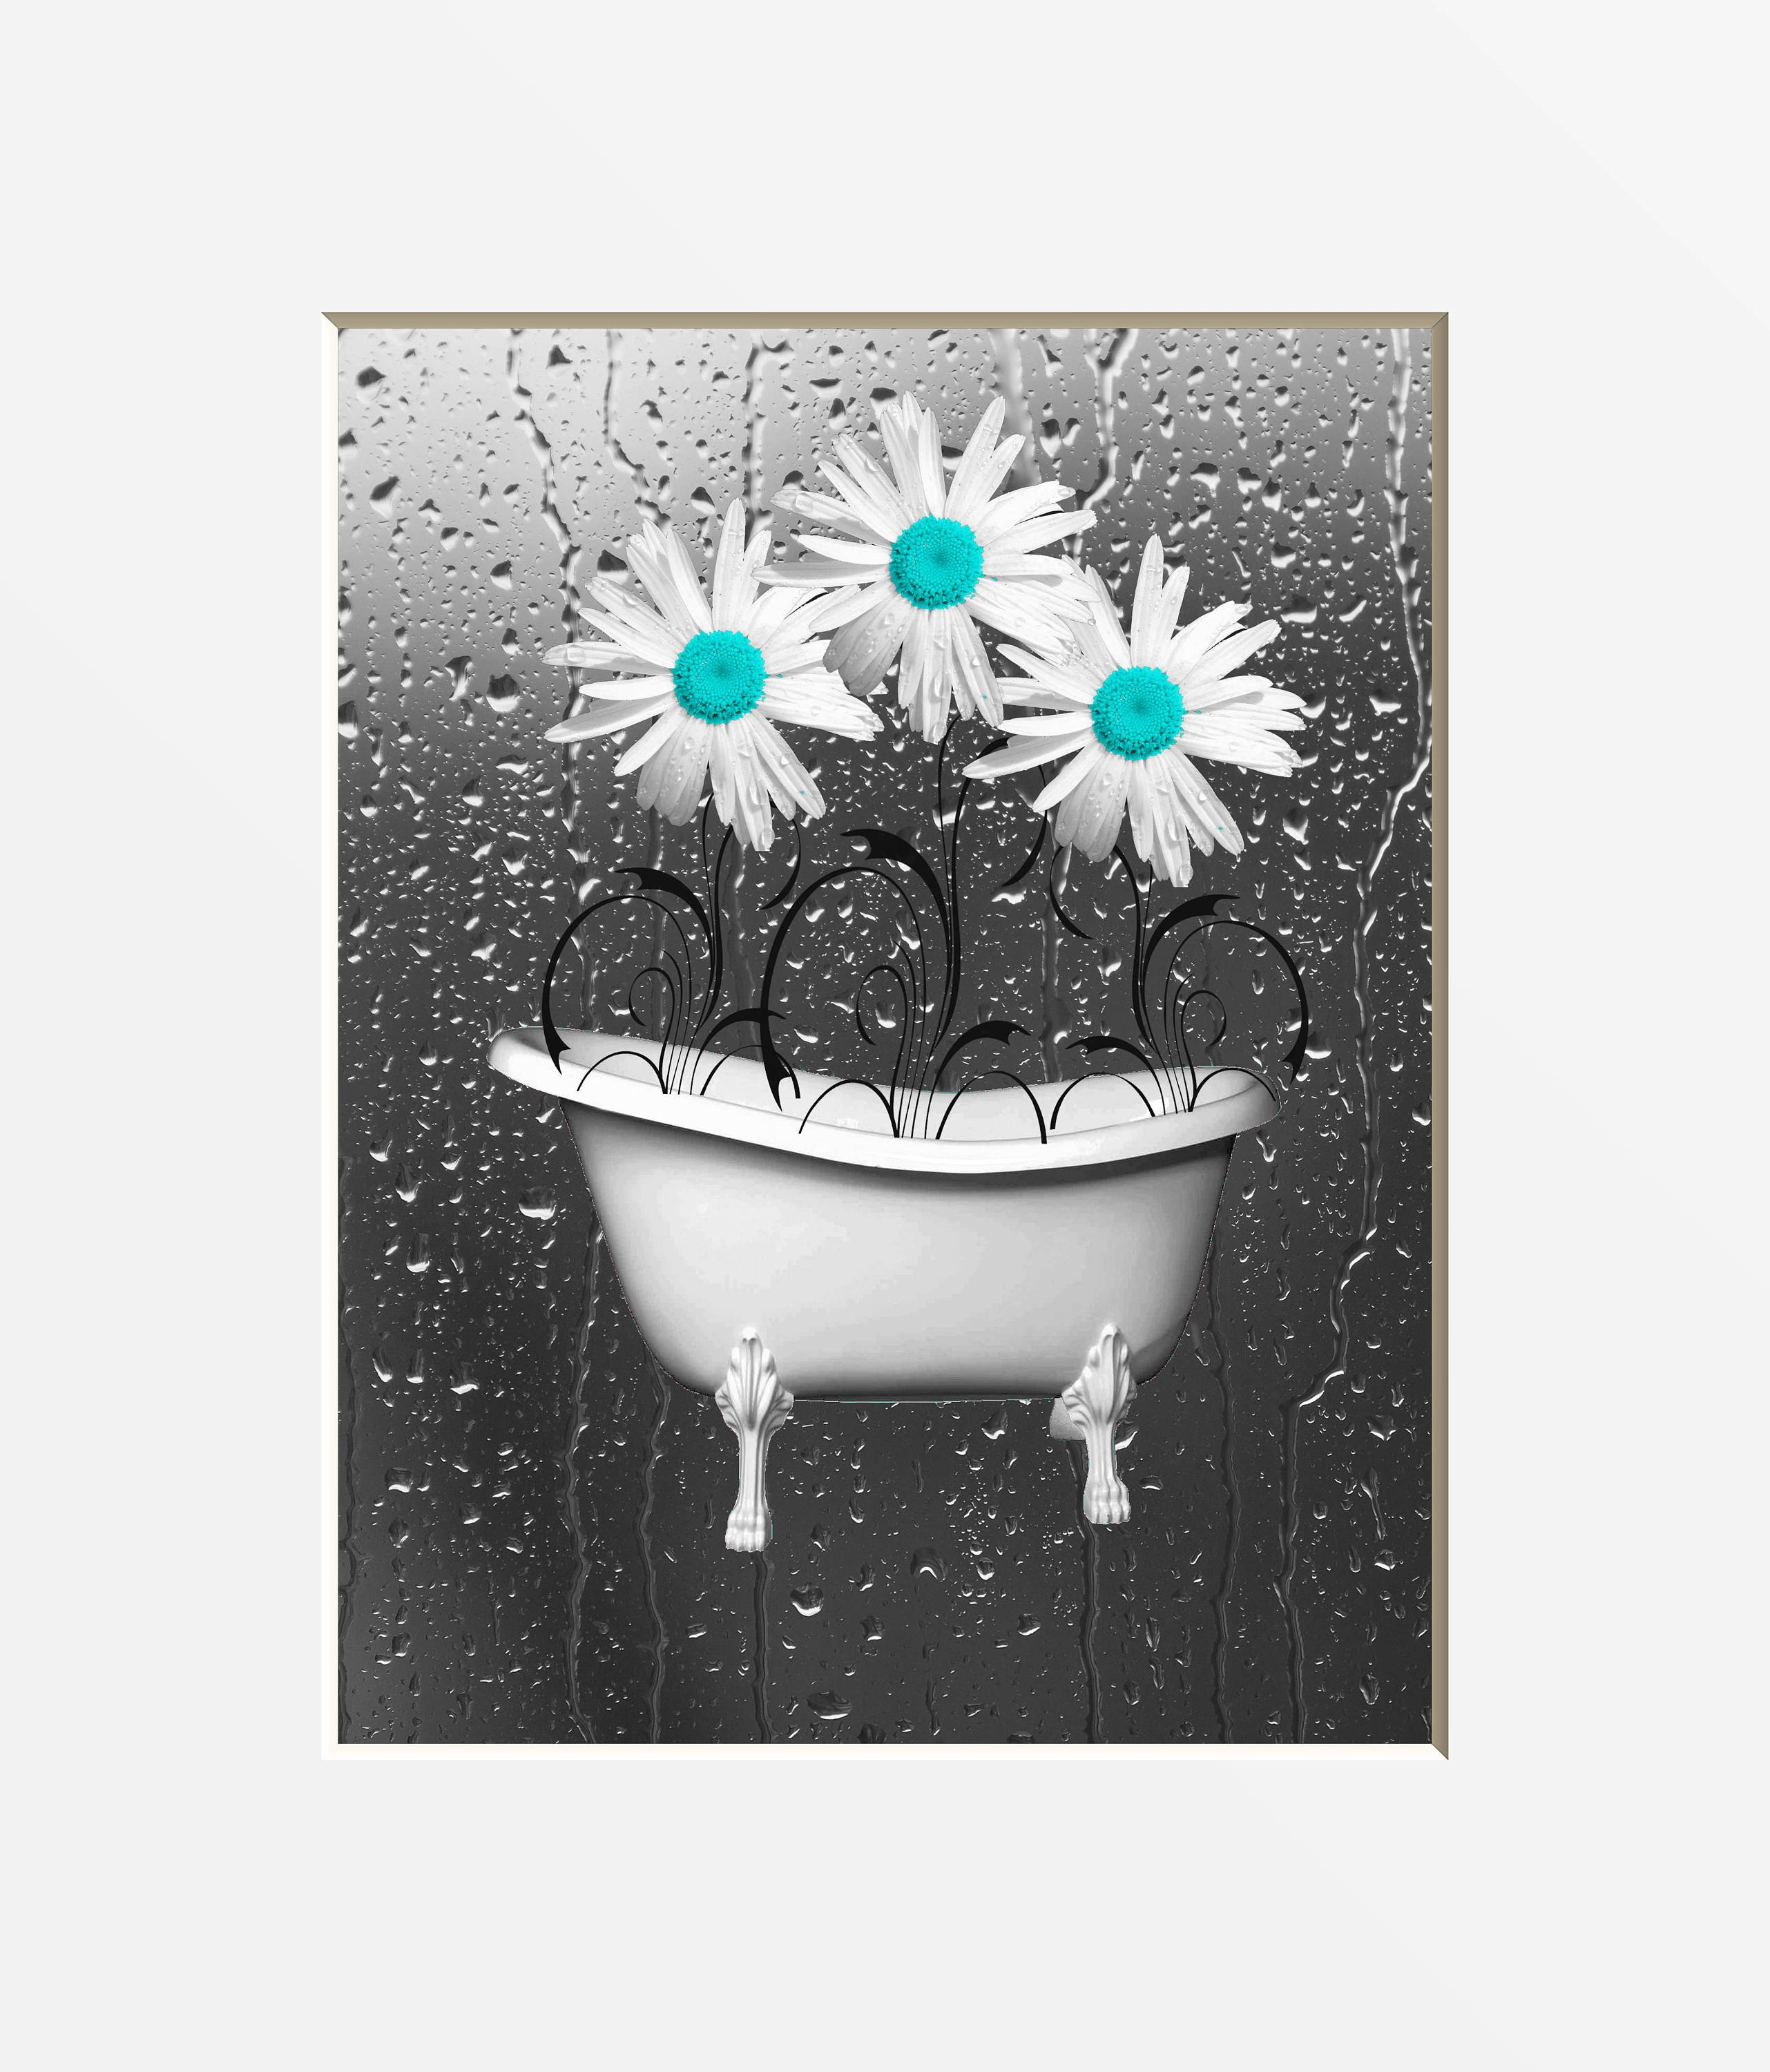 Teal and Gray Bathroom Decor Unique Teal Bathroom Wall Art Daisy Flowers Teal Gray Home Decor